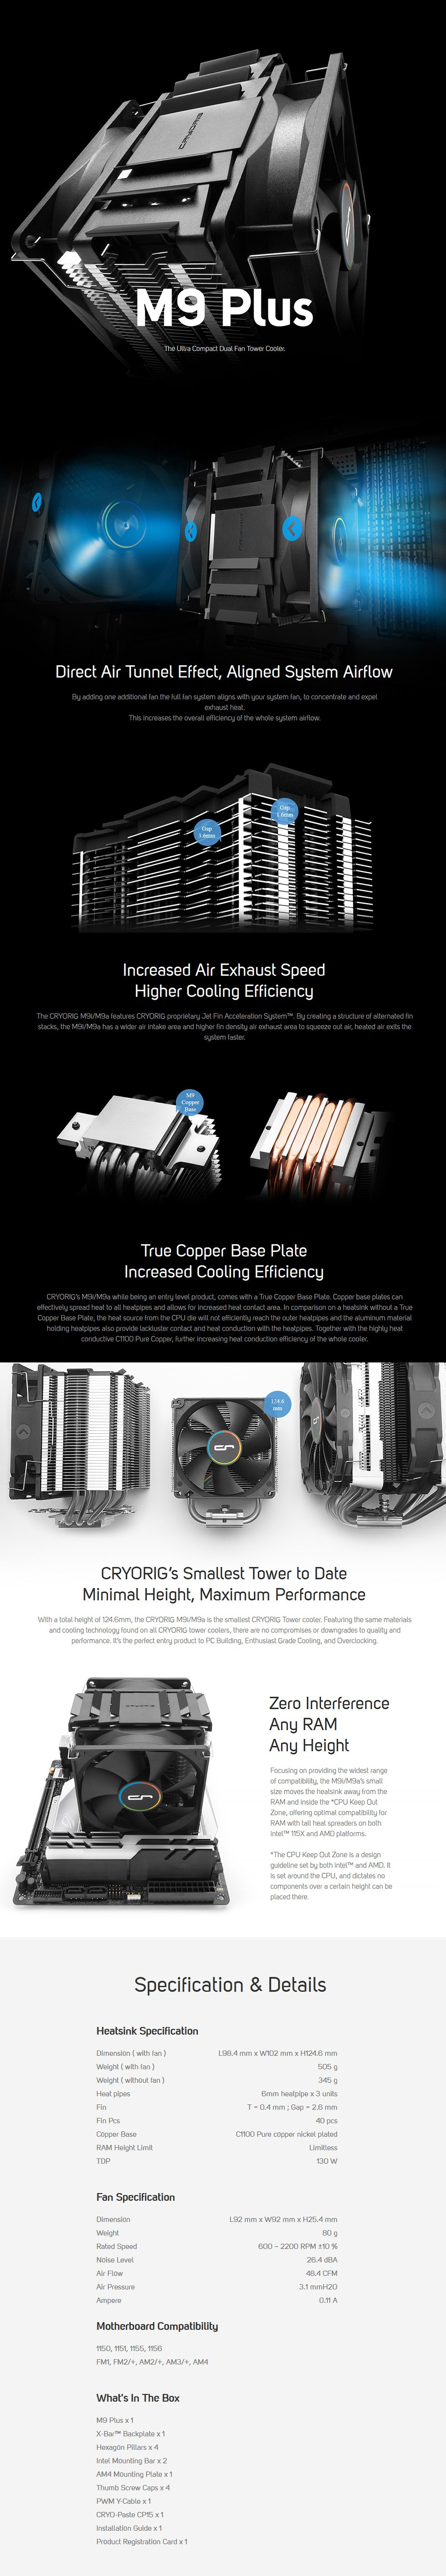 Cryorig M9 Plus Dual Fan Air CPU Cooler - Overview 1